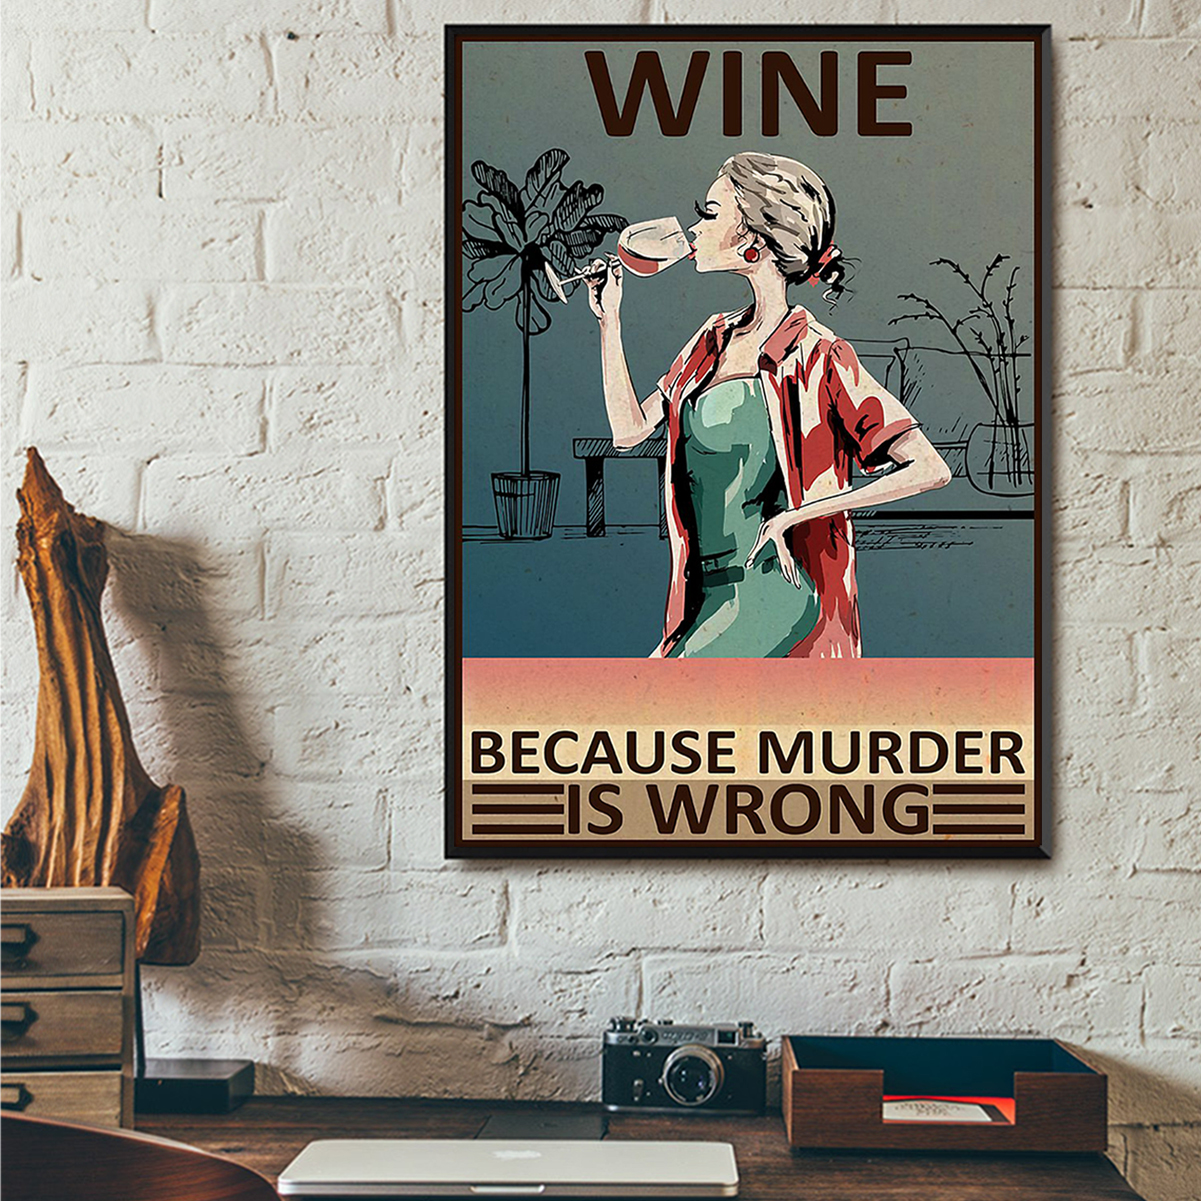 Wine because murder is wrong poster A3